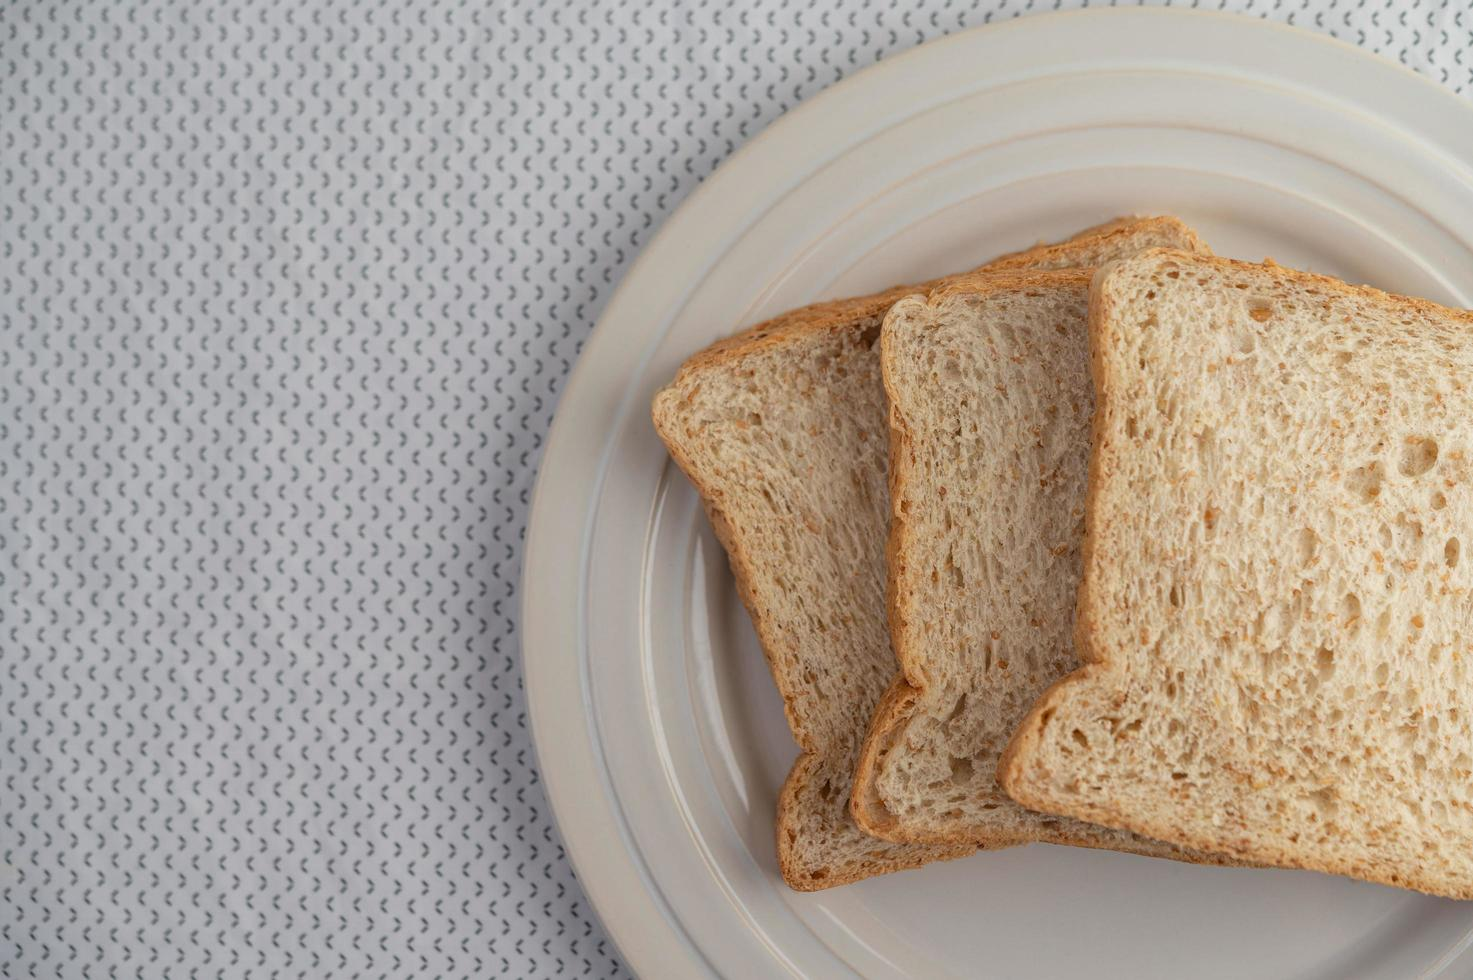 Sliced pieces of bread photo